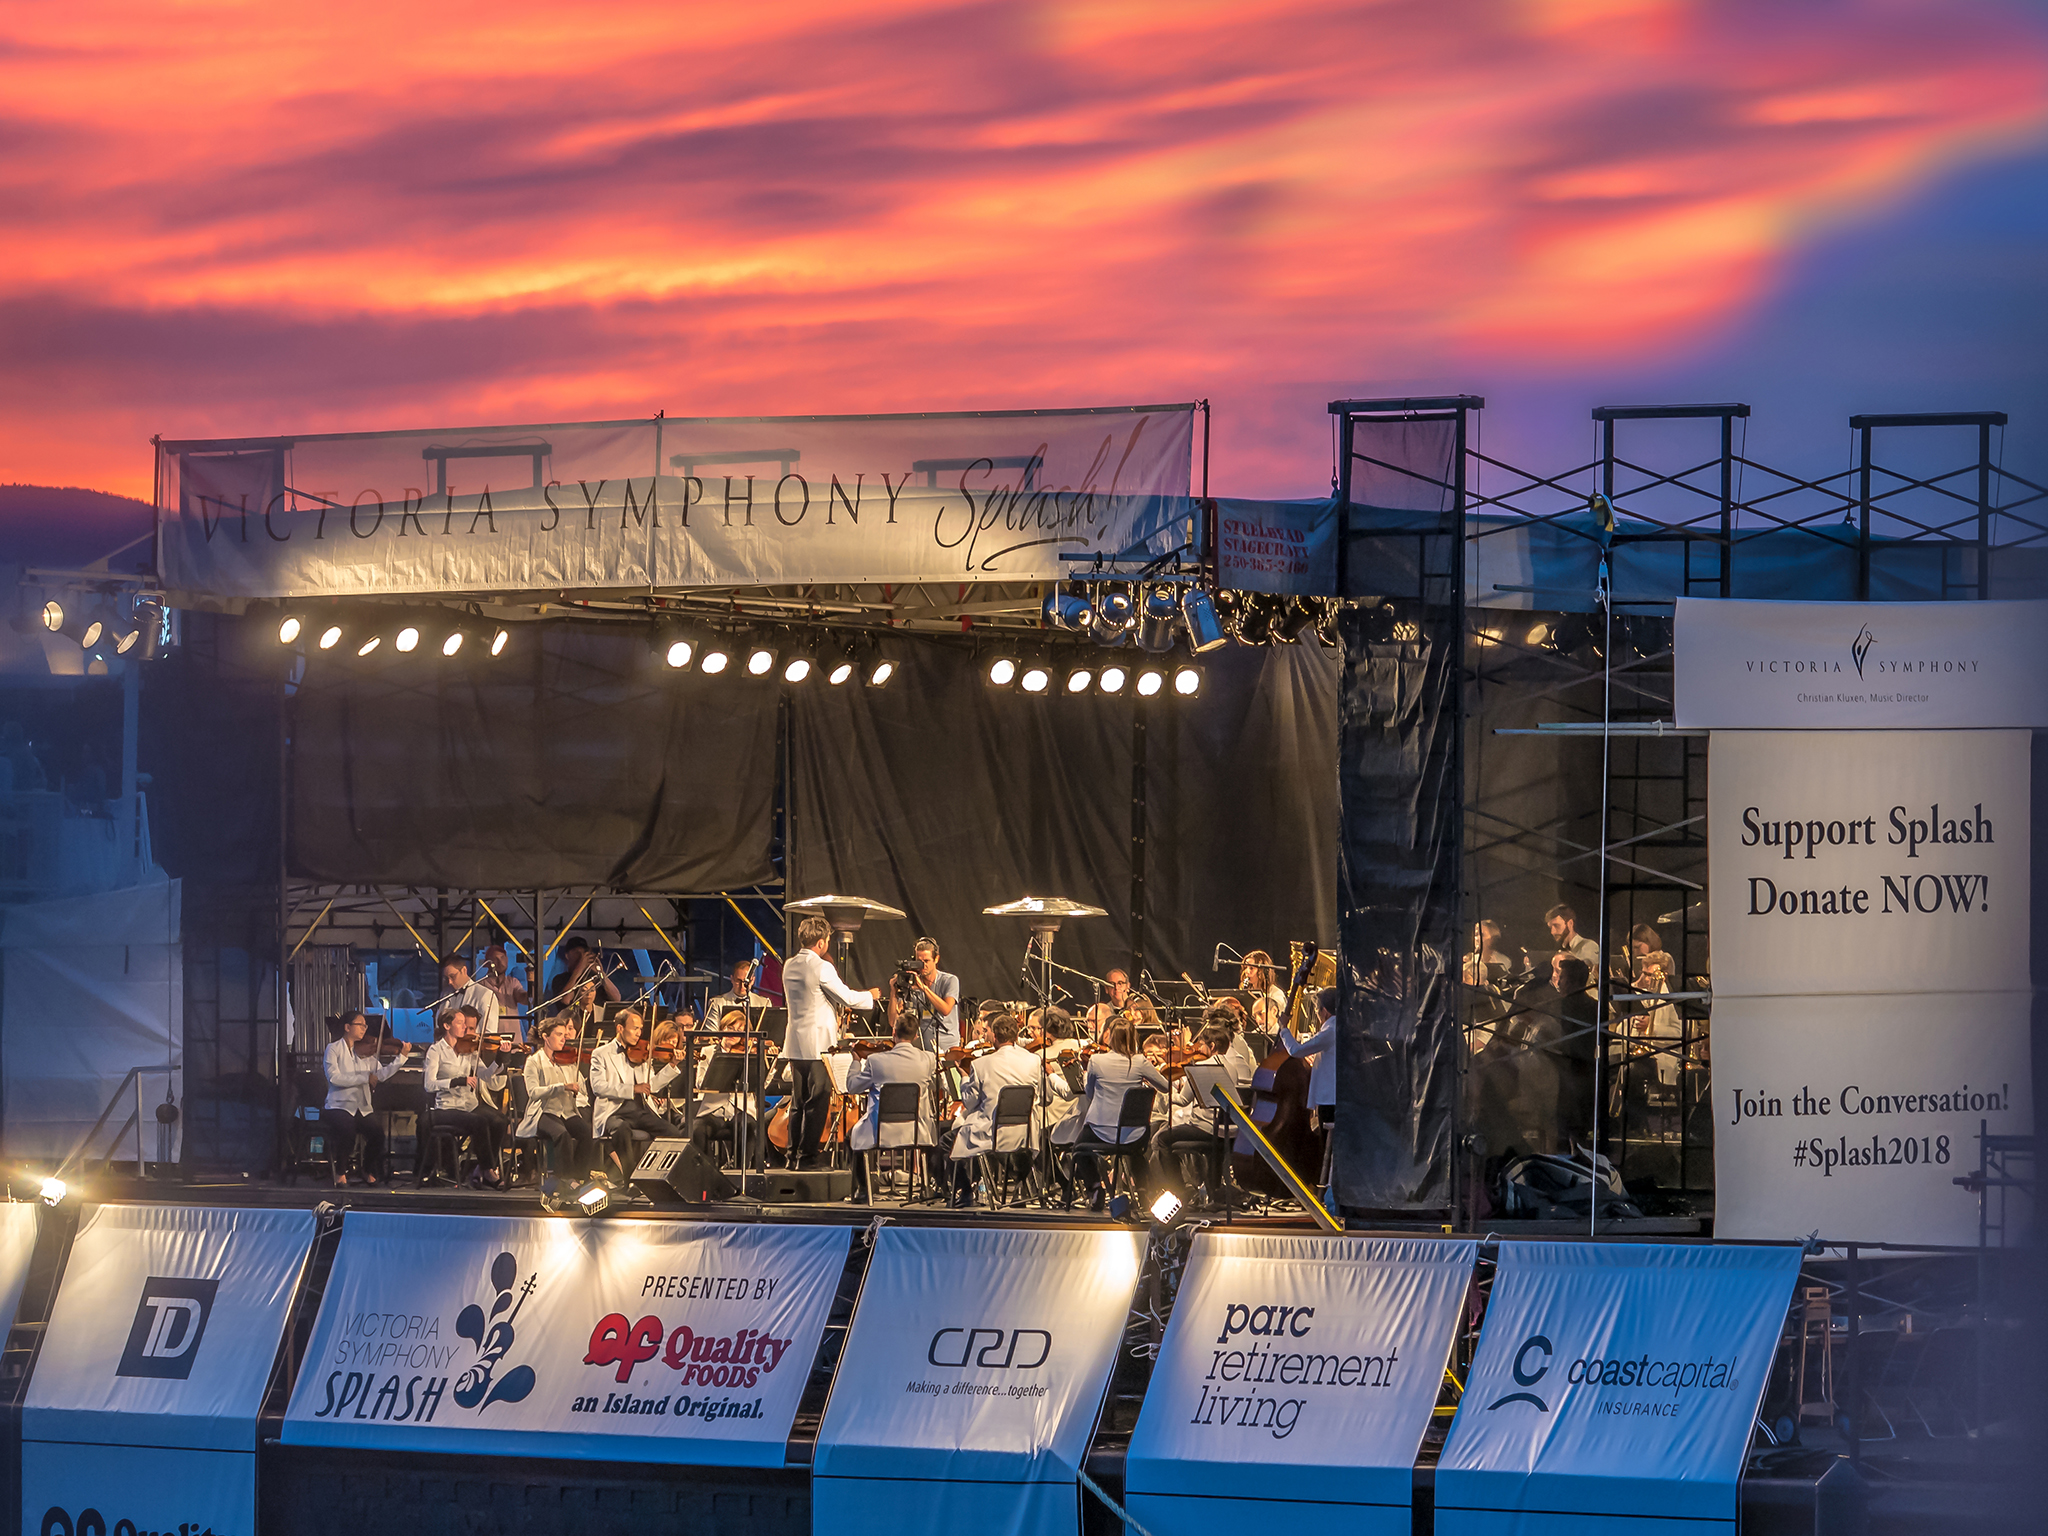 """What a beautiful evening it was for this event, thousands of people gathered at the Inner Harbour to listen to the music, the weather was hot and the sunset was magic. More photos can be seen on the """"Events"""" page."""